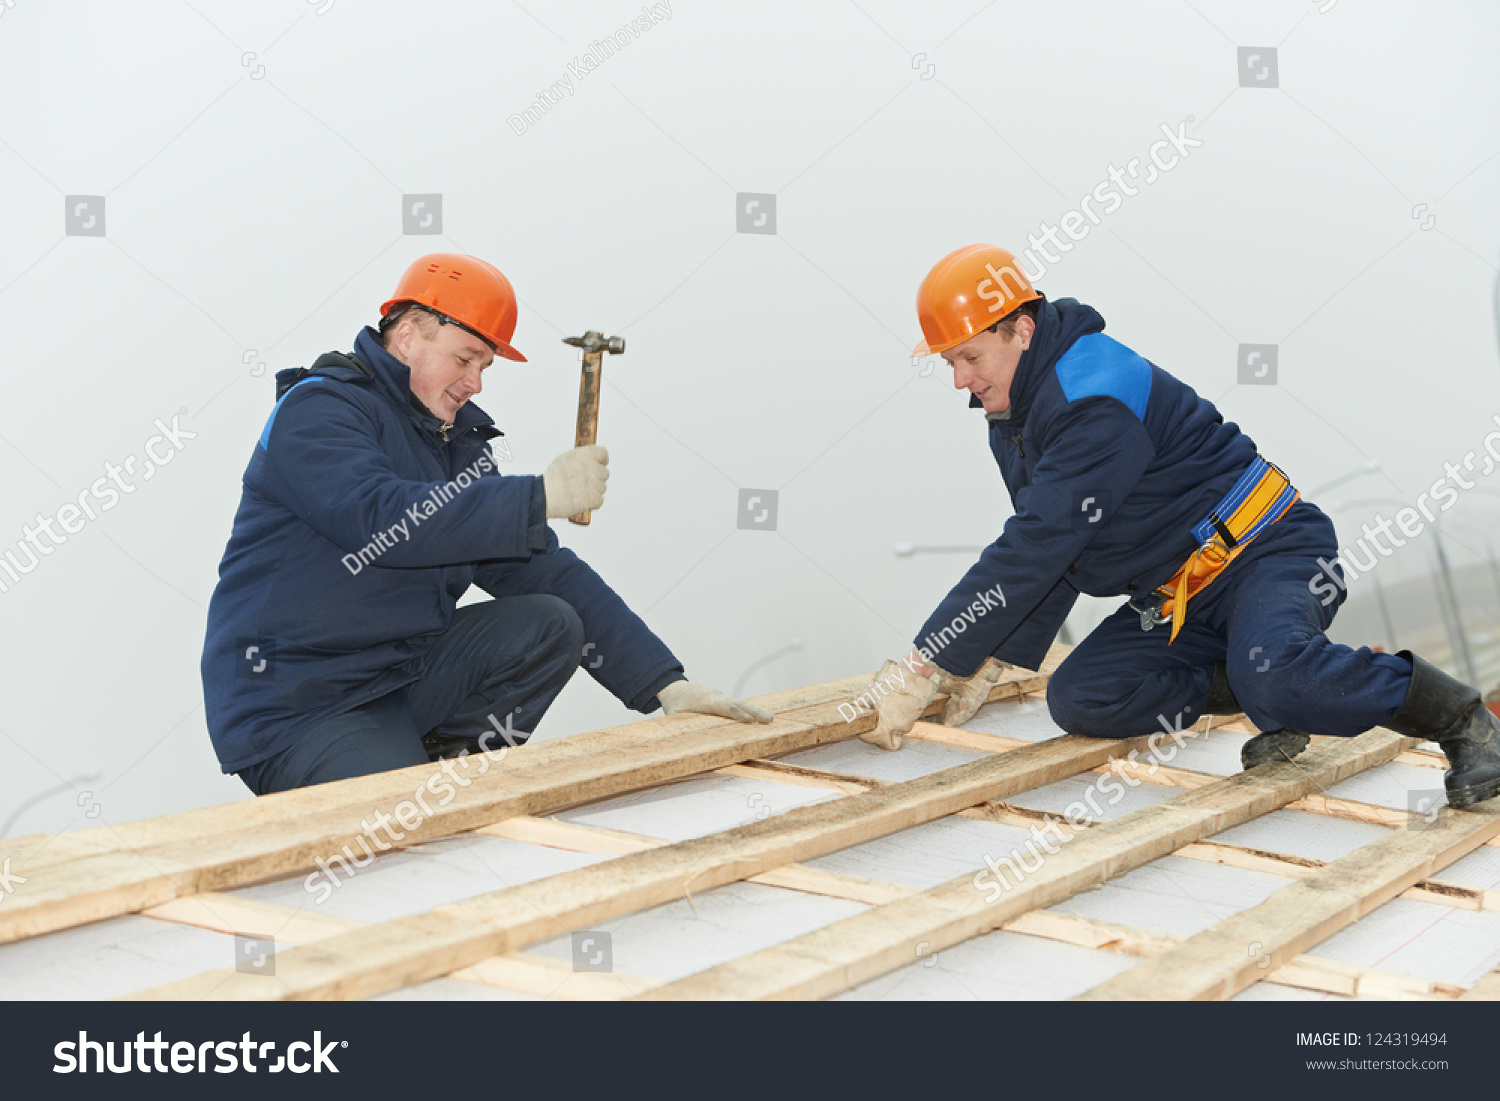 two roofers nailing wood roof boarding lathing with hammer stock photo 124319494 shutterstock. Black Bedroom Furniture Sets. Home Design Ideas